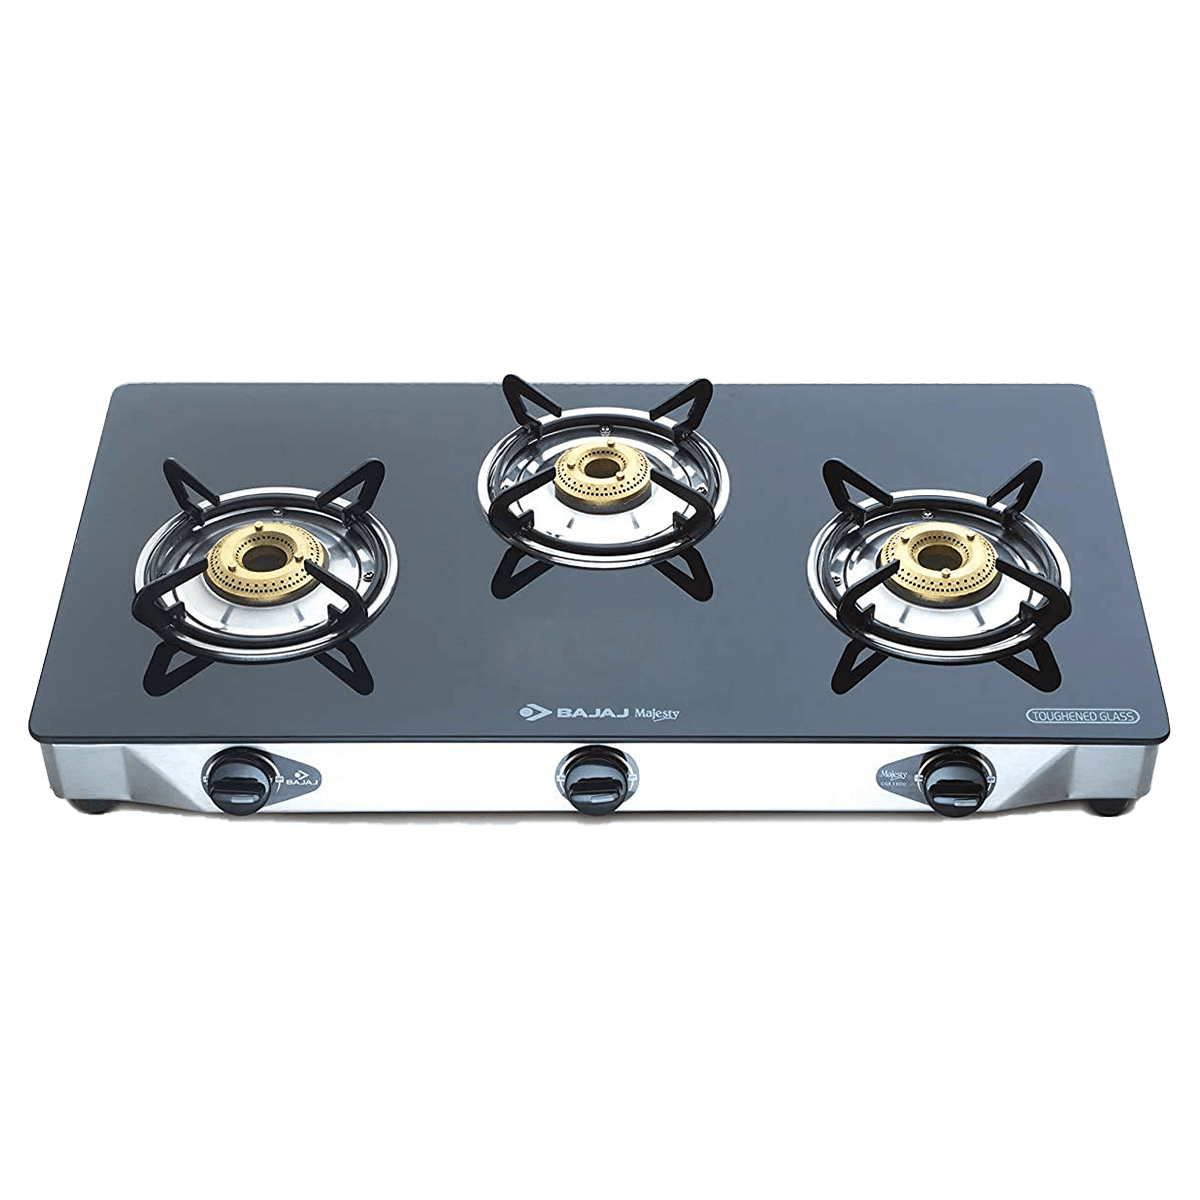 Bajaj 3 Burner Glass Gas Stove (Thermal Efficient Brass Burner, Majesty CGX3 Eco, Black)